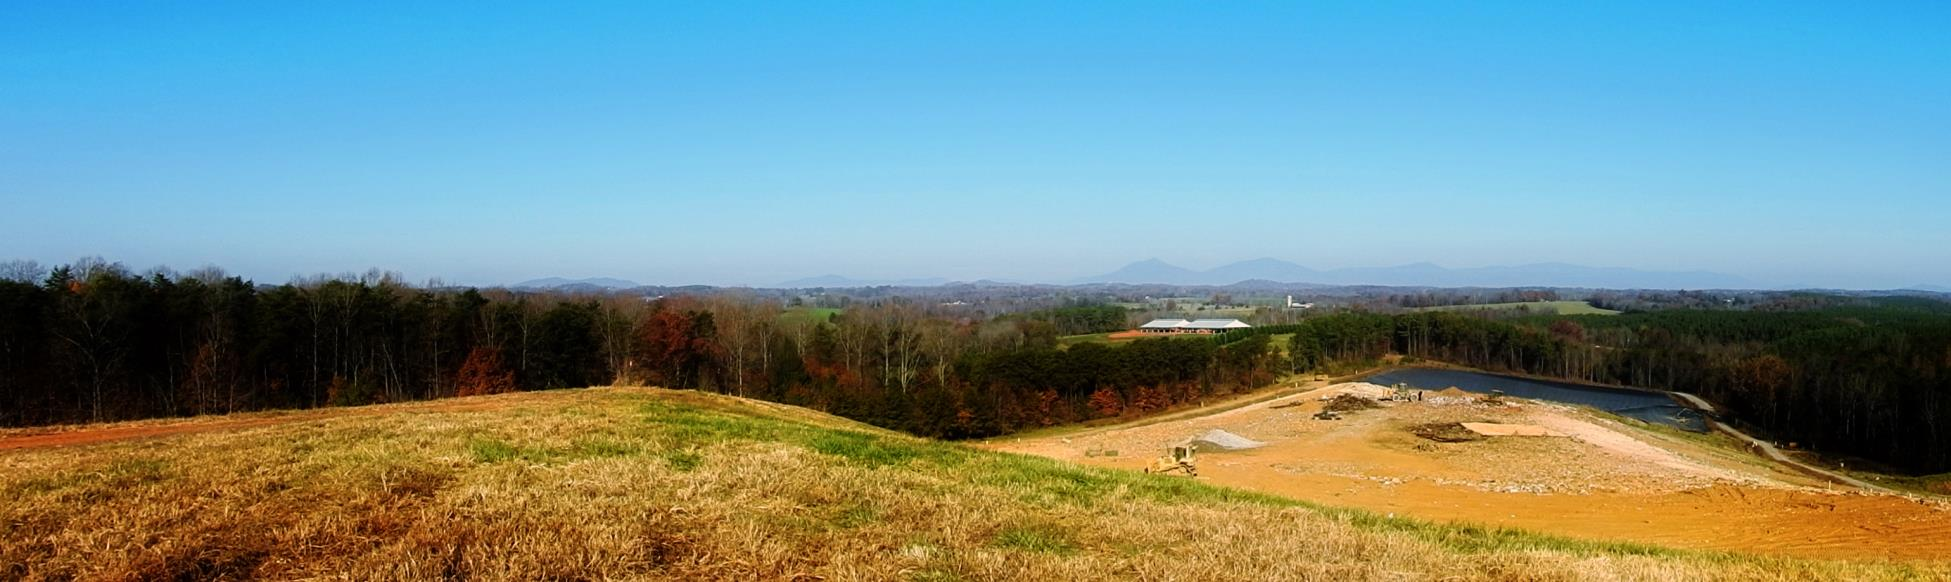 Panorama from the Top of the Closed Landfill and the Peaks